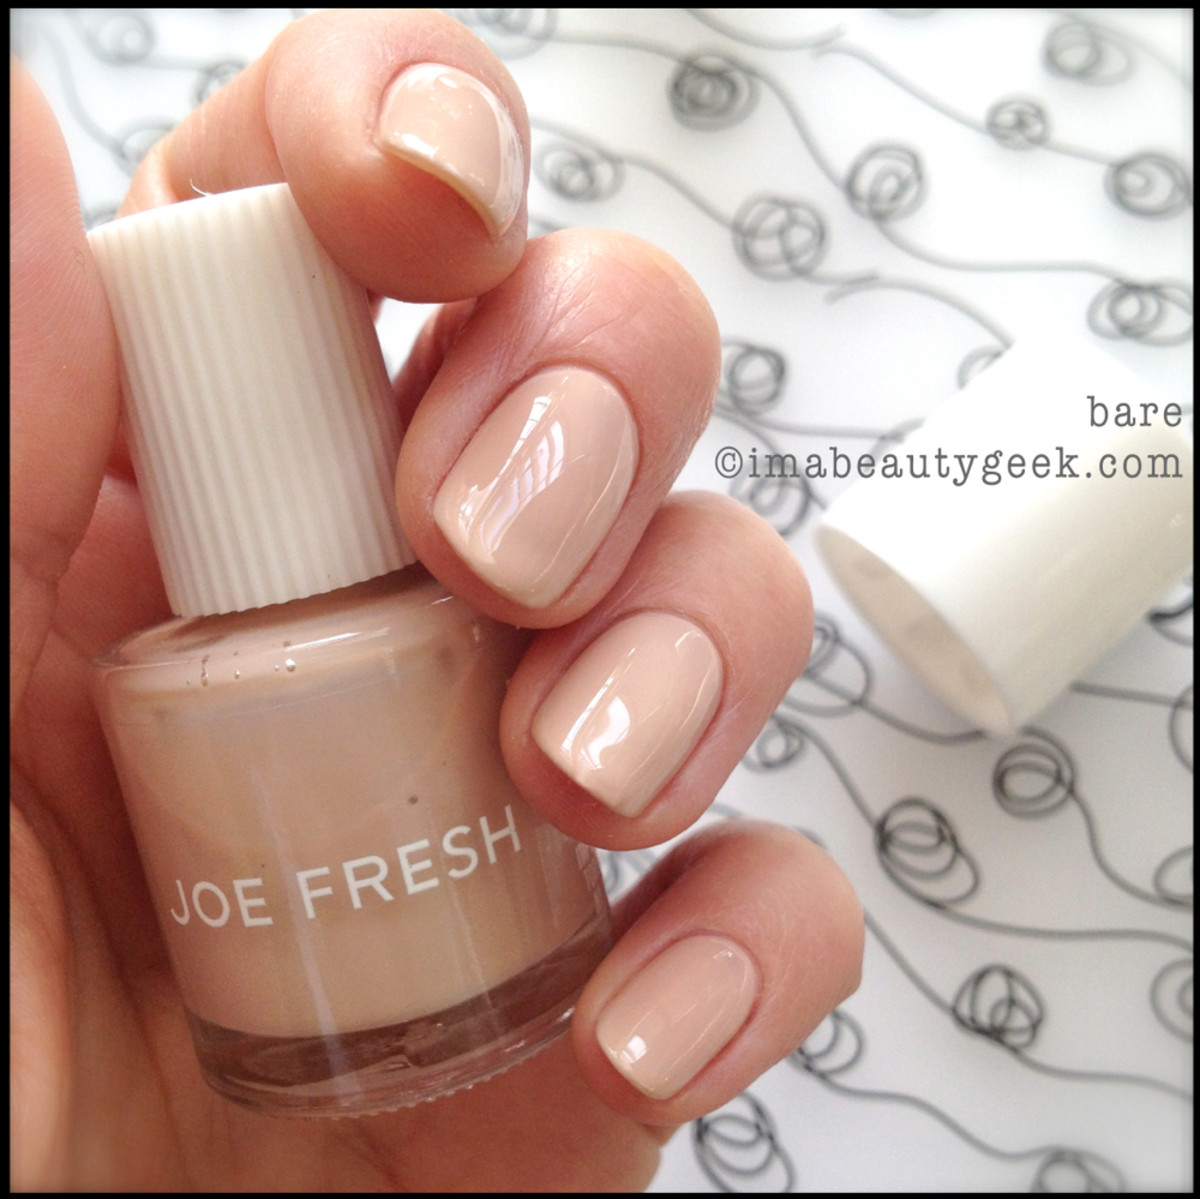 Joe Fresh Polish Bare